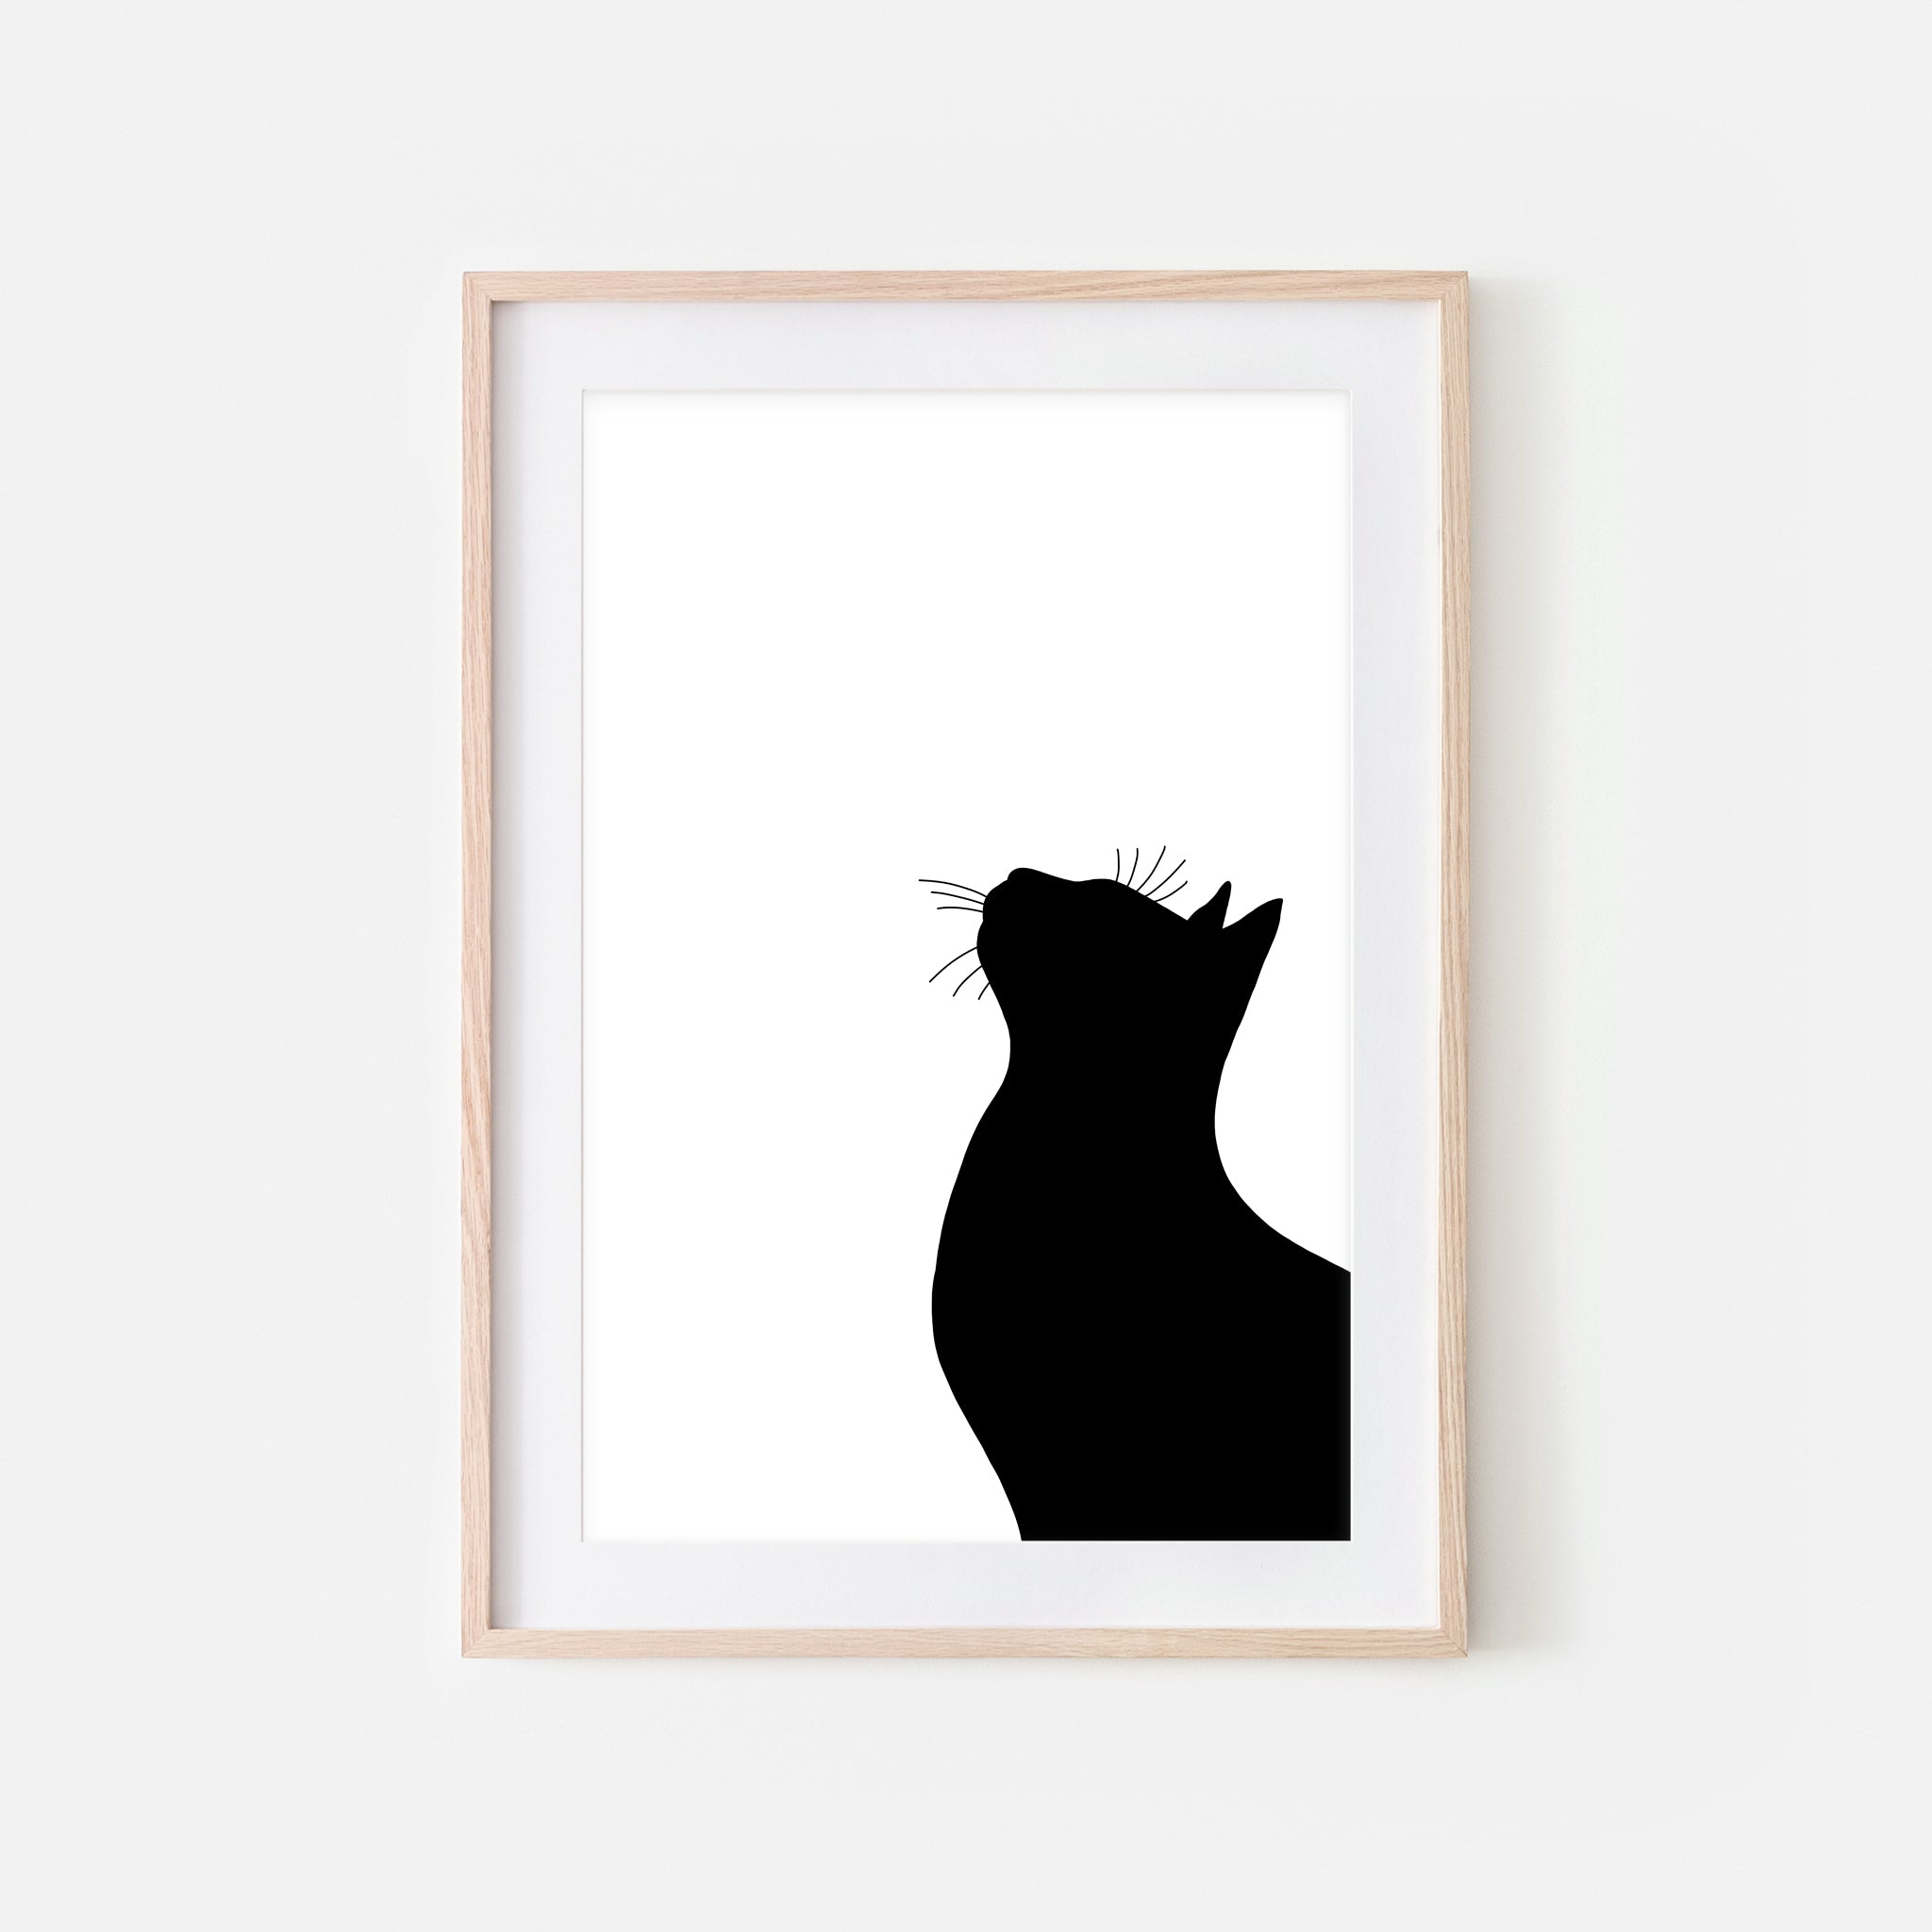 Cat Profile Silhouette Wall Art - Minimalist Black and White Print, Poster or Printable Download